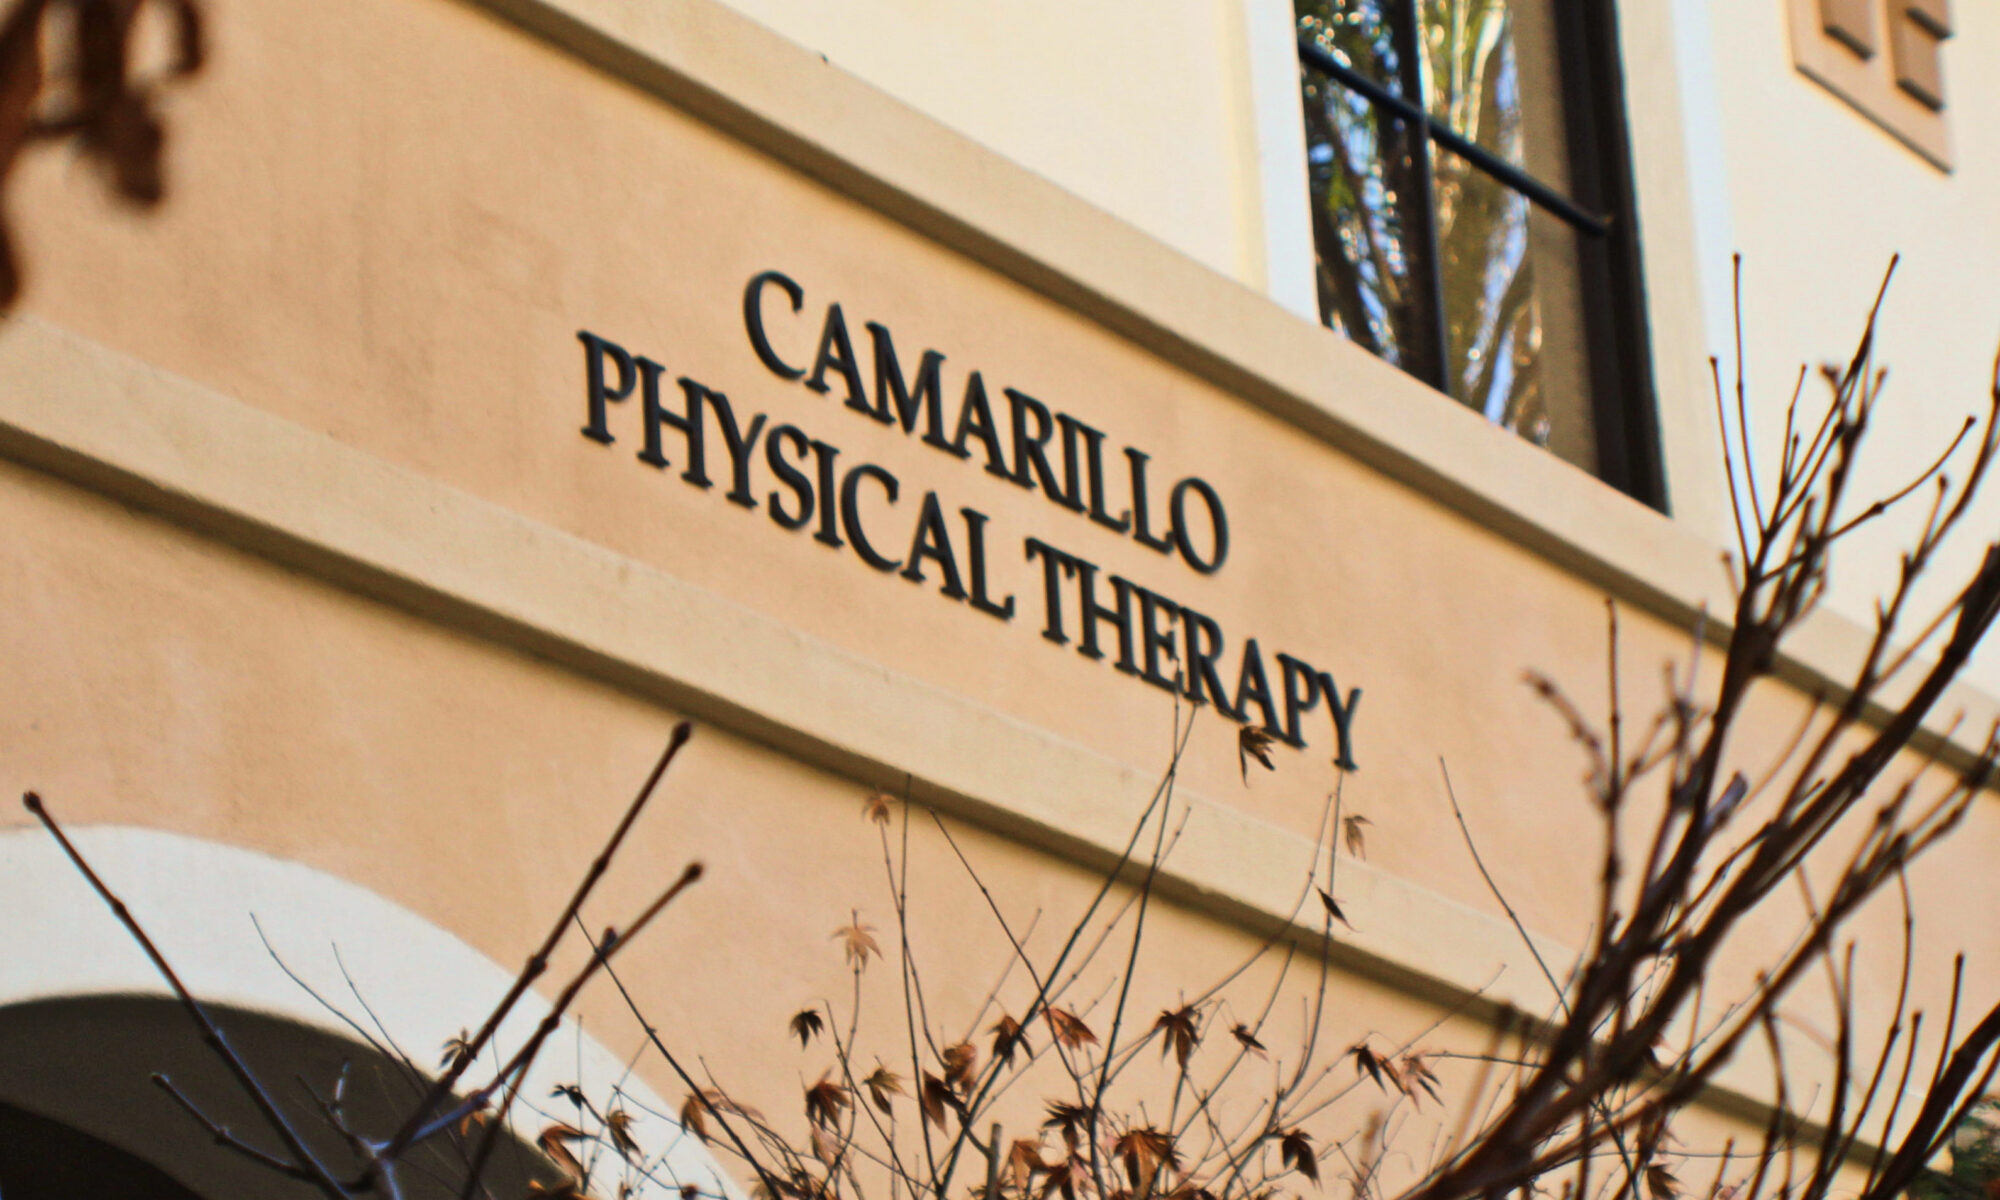 Camarillo Physical Therapy